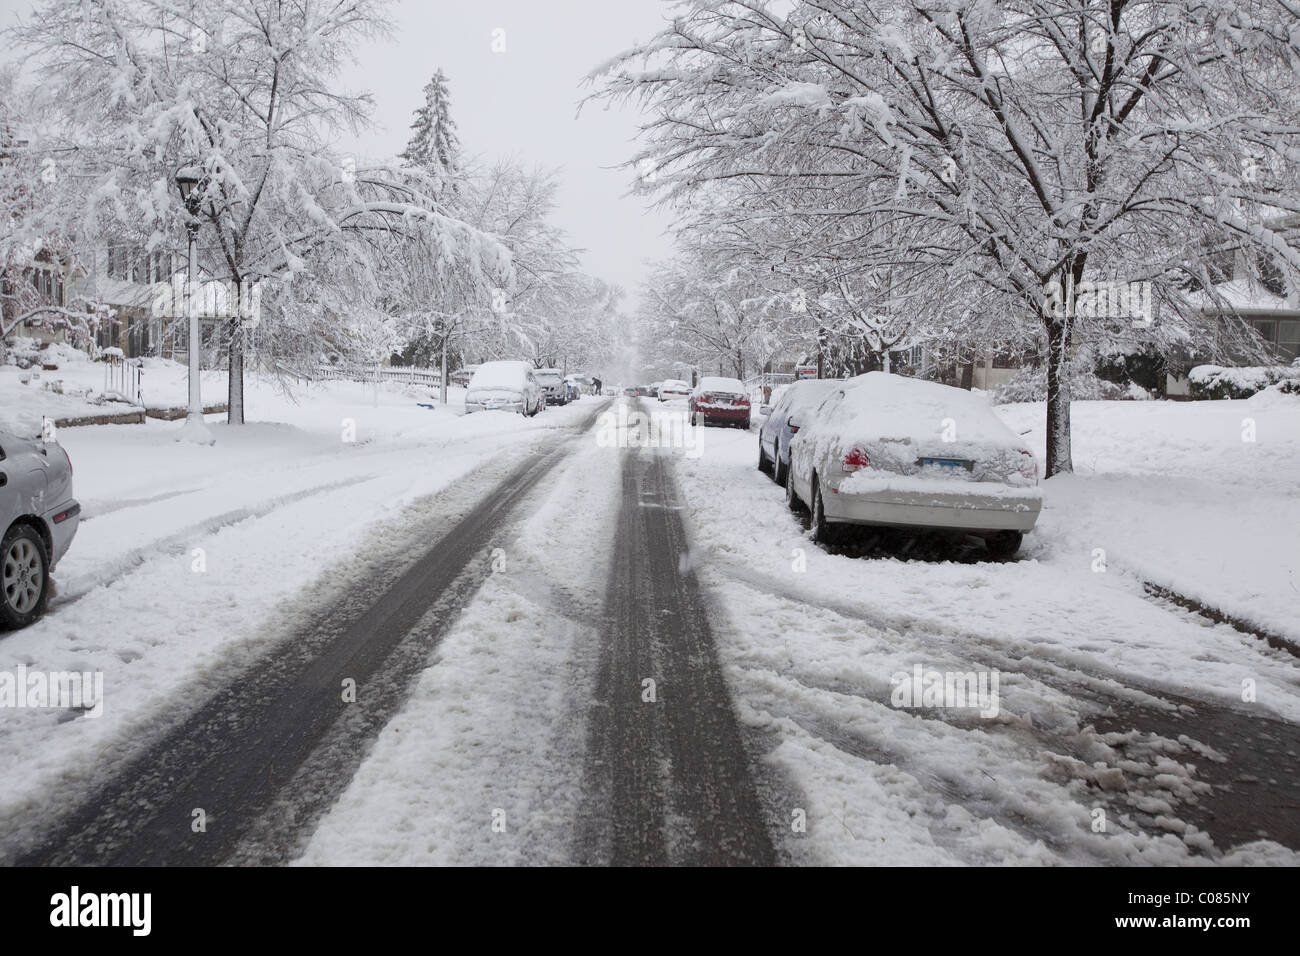 Tire tracks left by cars in a residential area after an early winter storm - Stock Image